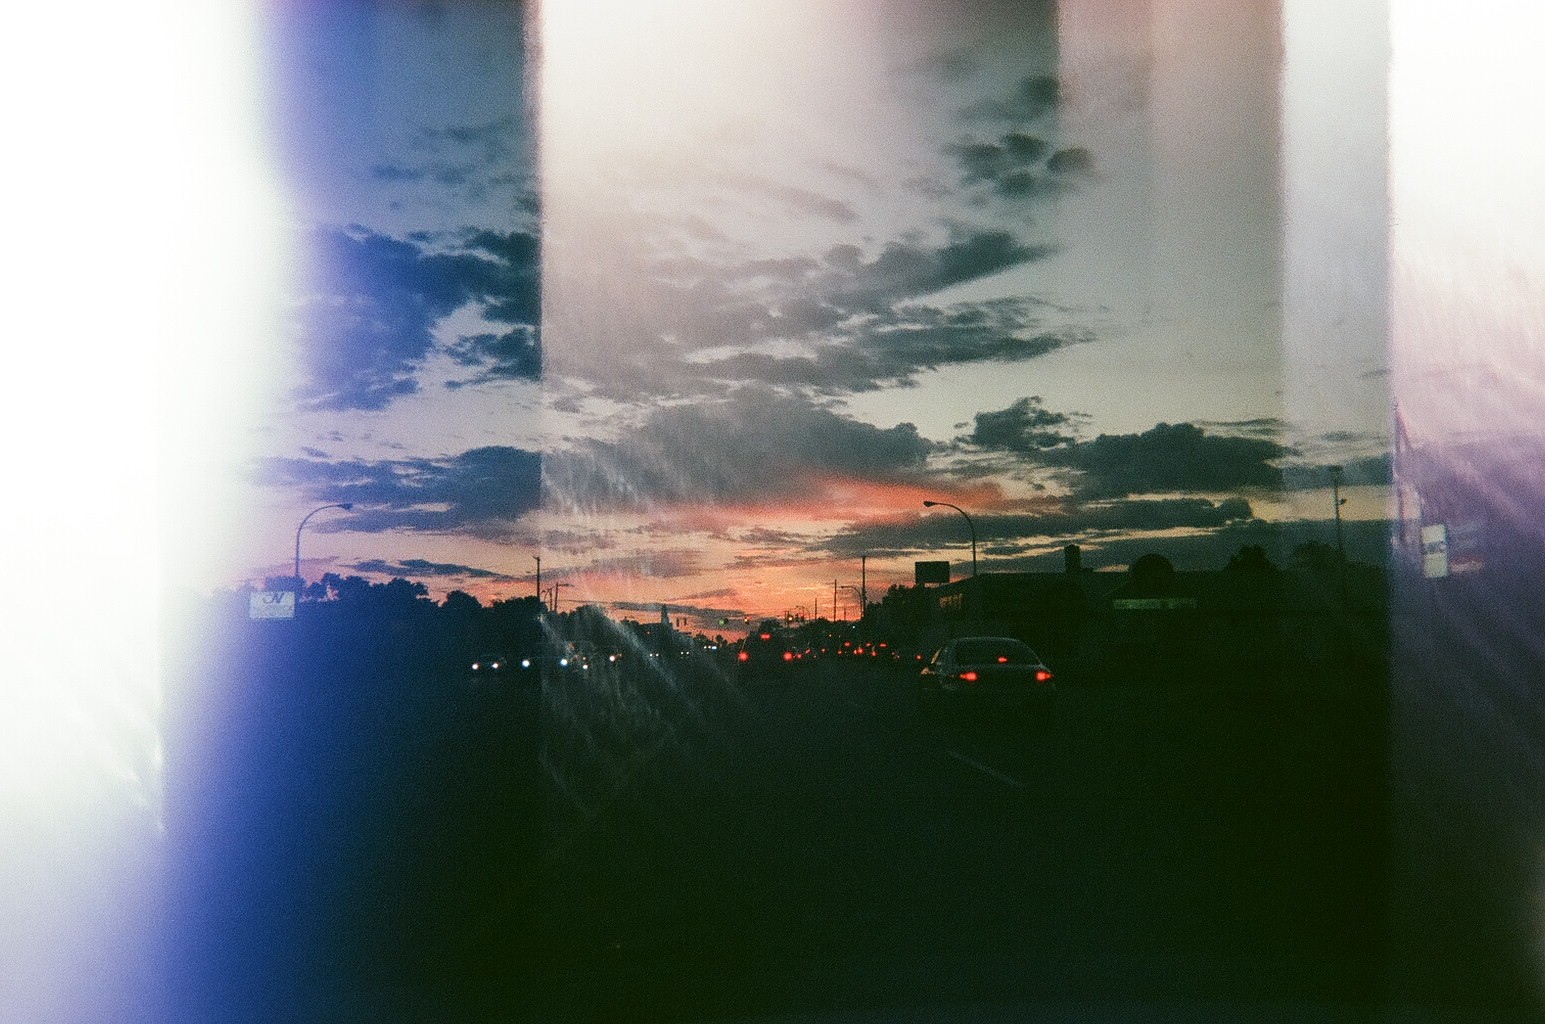 A sunset during traffic, which was taken with a single exposure. I'm not sure what happened but I really dig the effect.